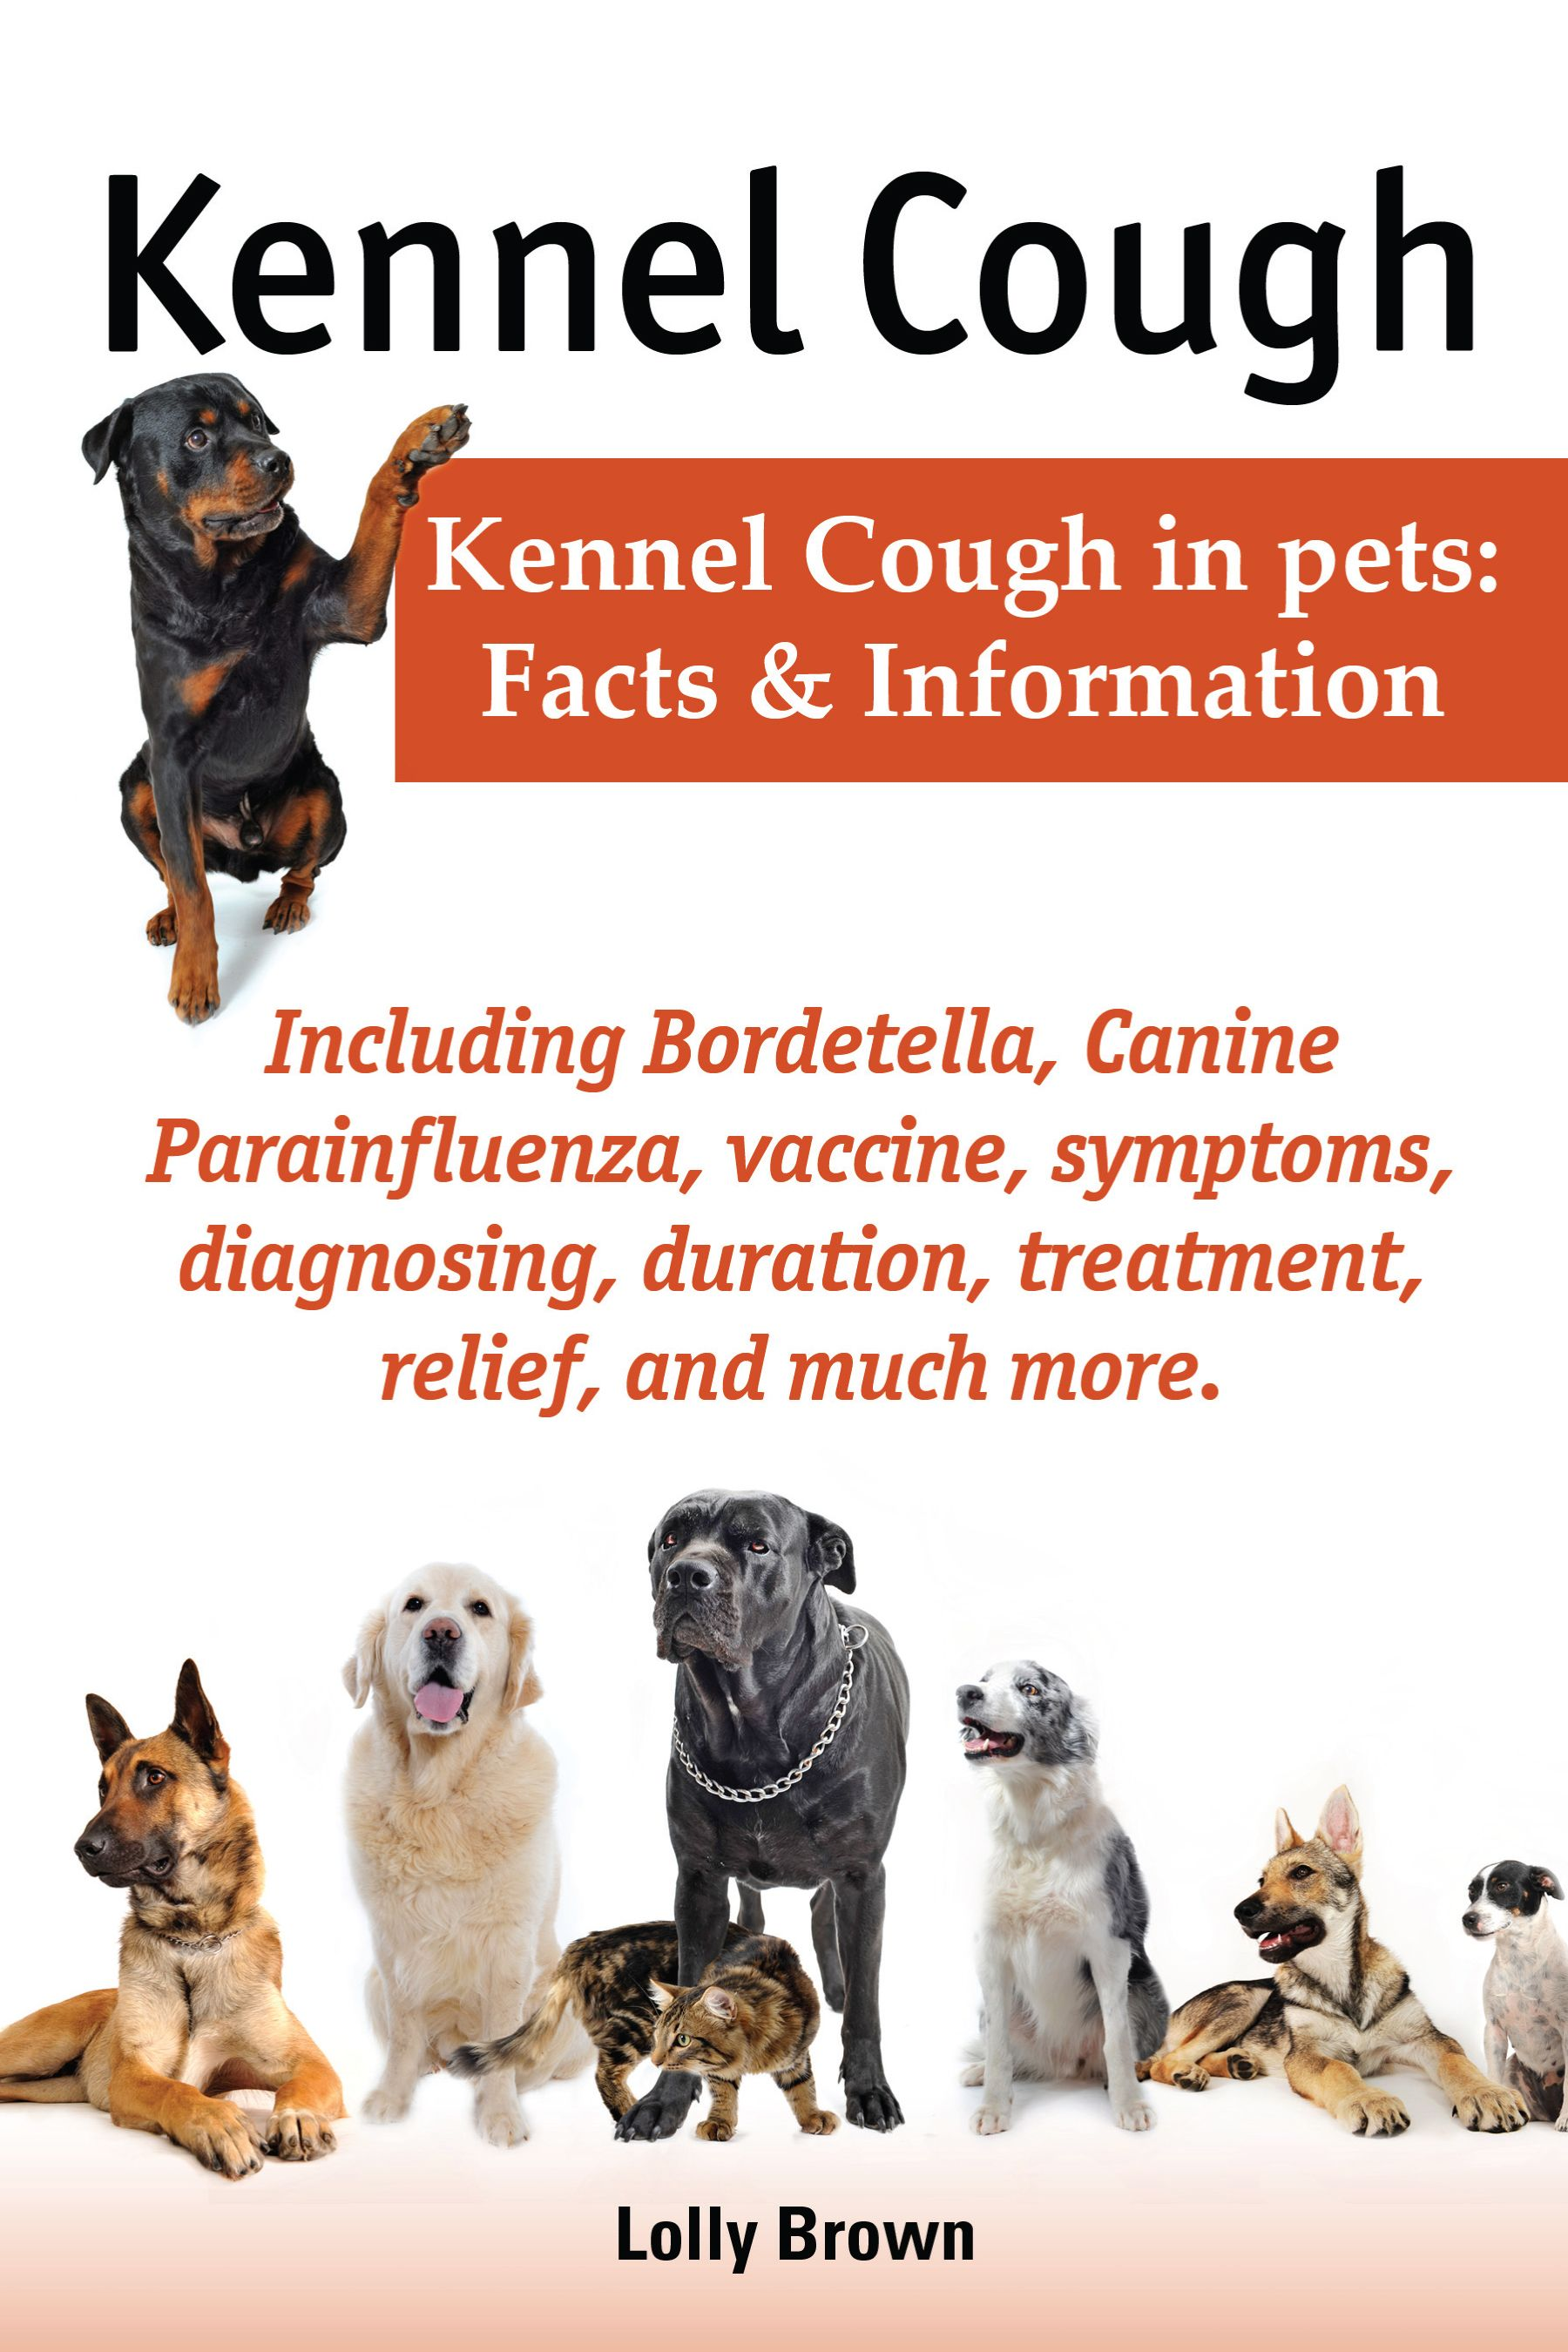 How to Treat Kennel Cough